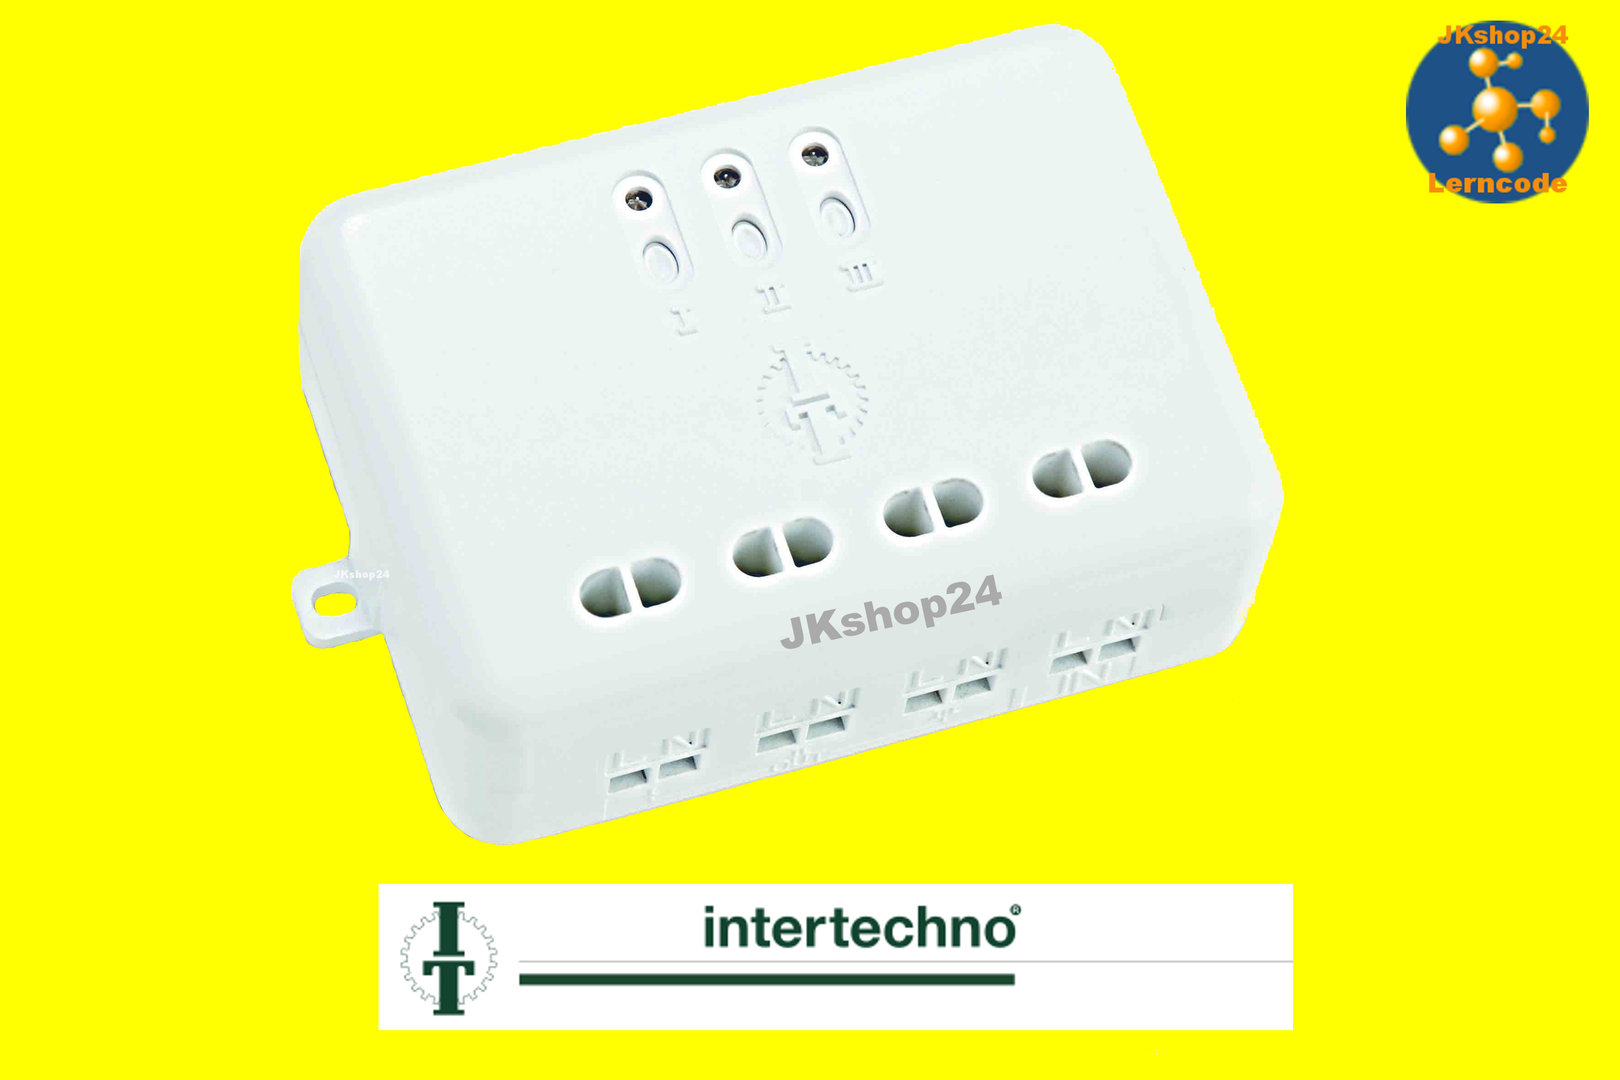 Intertechno funk schalter sender empf nger it modul dimmer for Koch 4 kanal funk dimmer